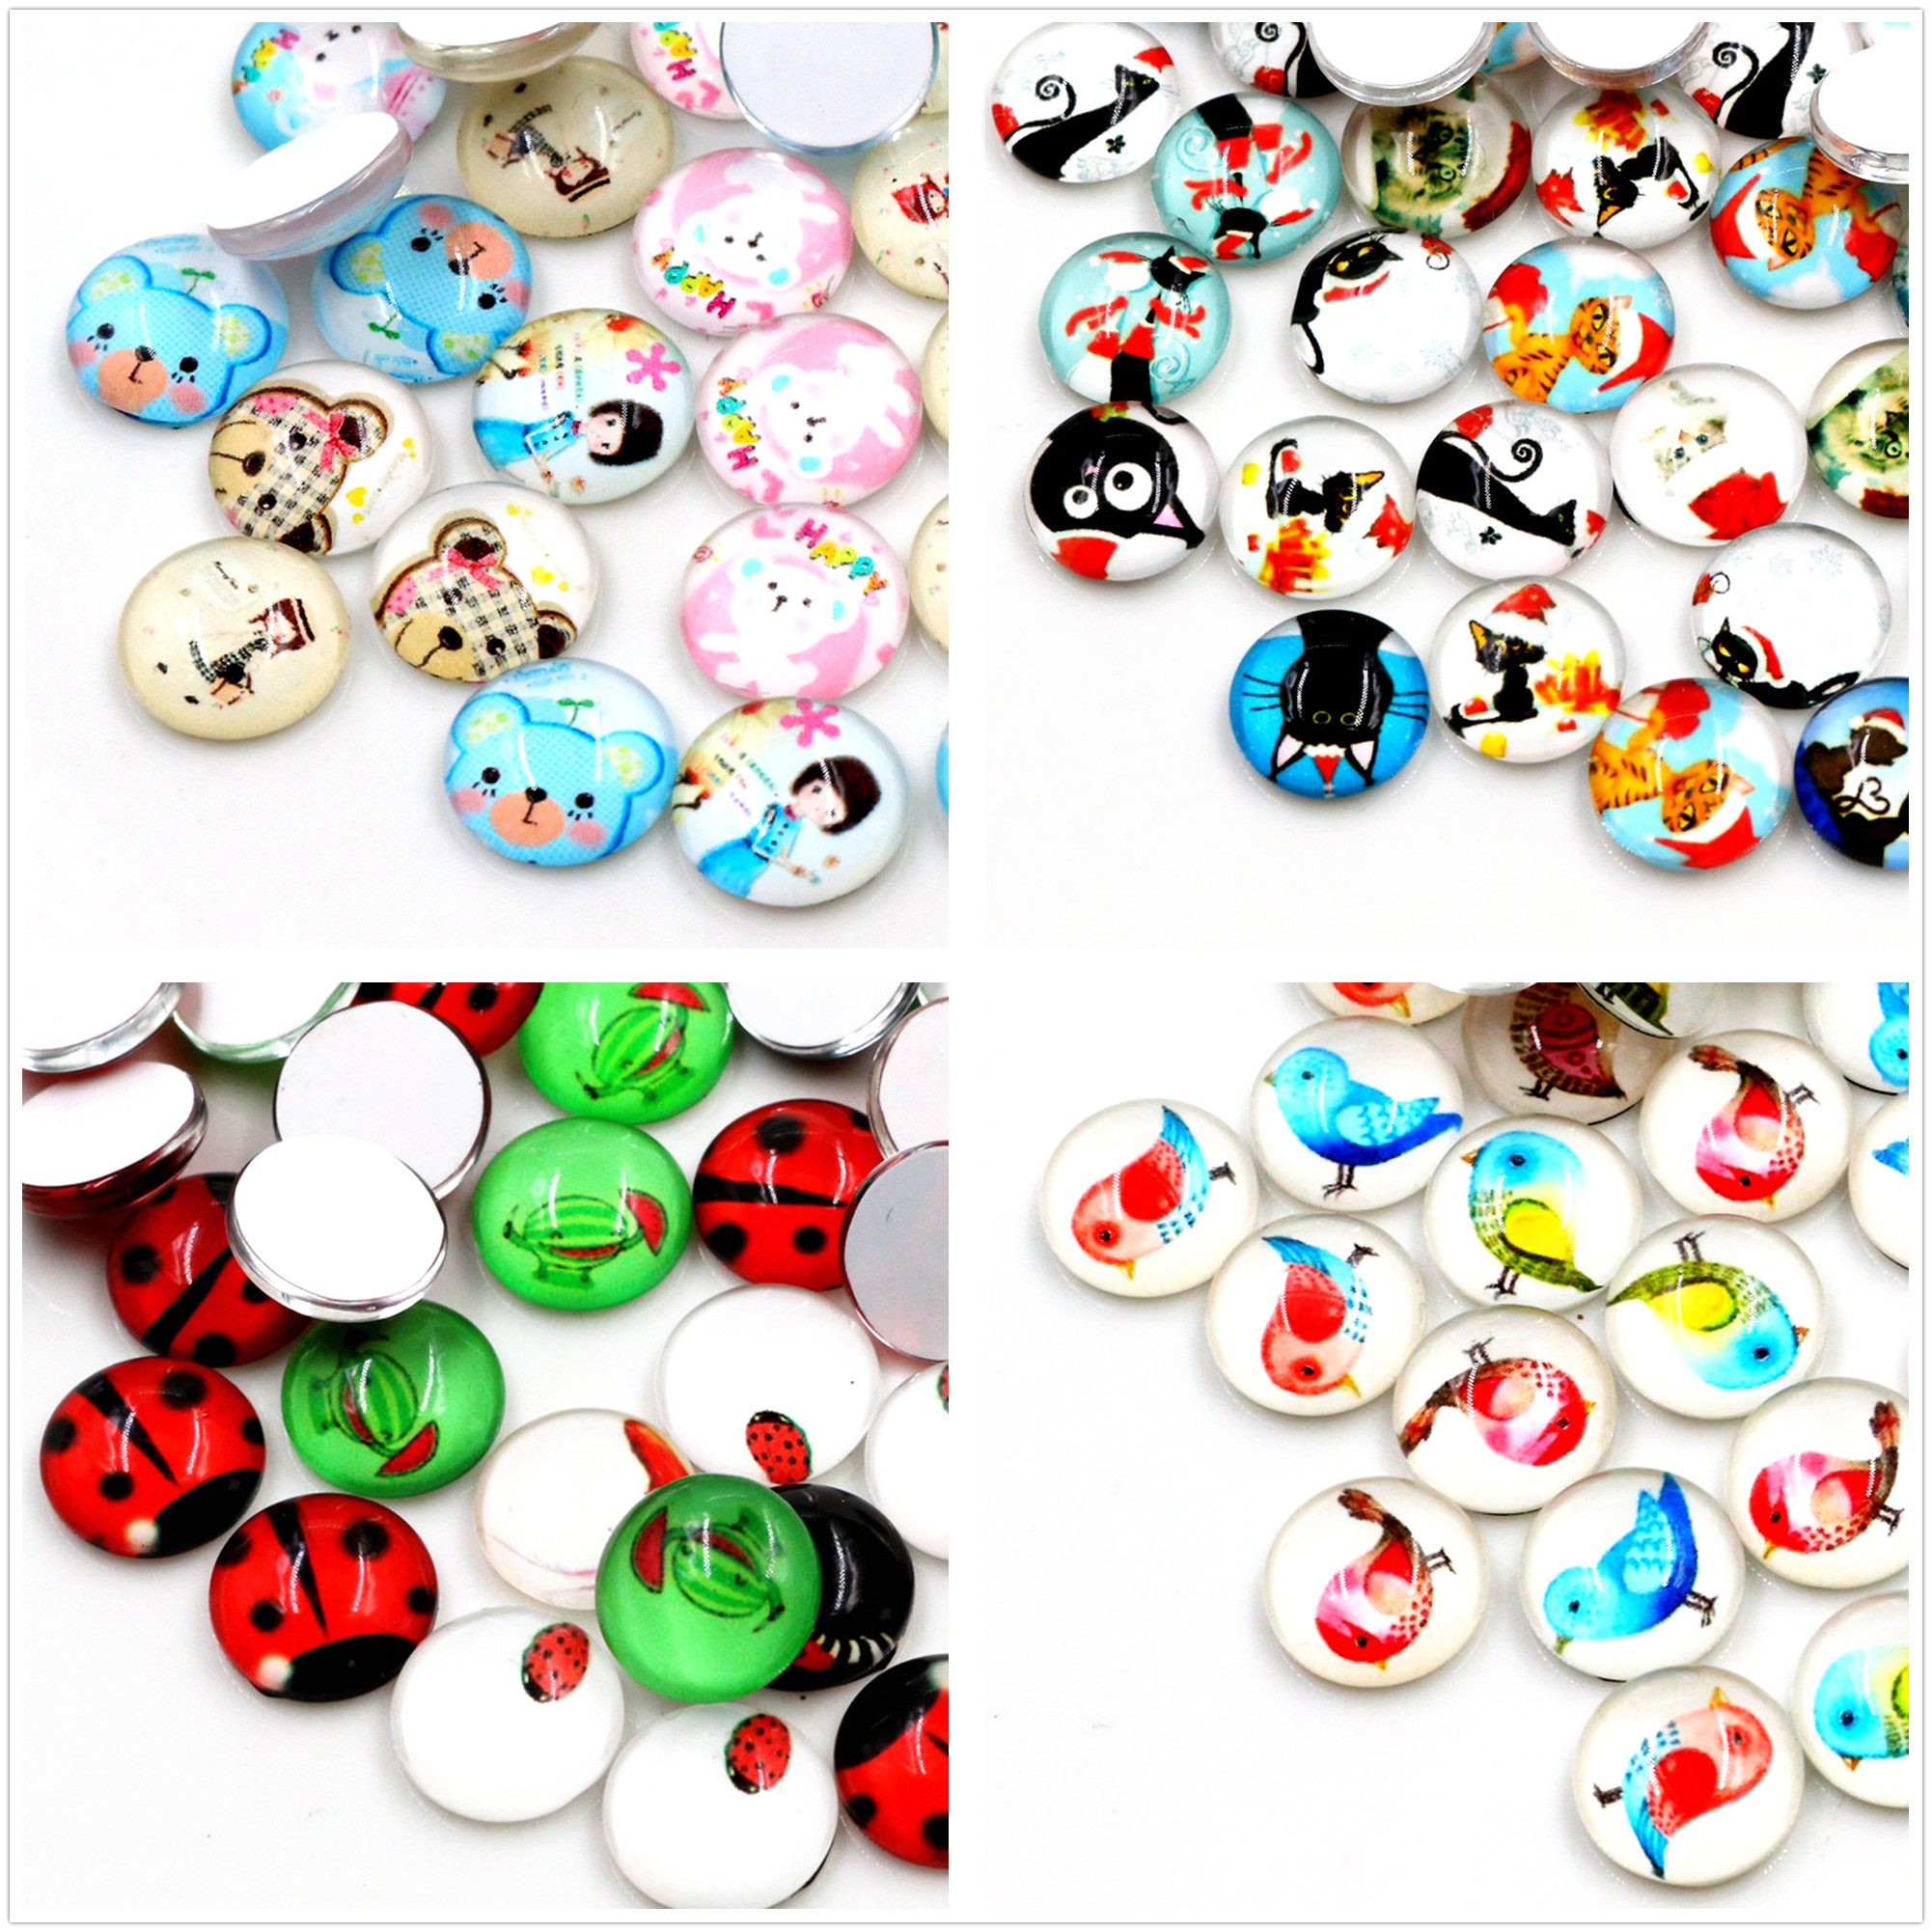 50pcs/Lot 12mm Colorful Cut New Photo Glass Cabochons Mixed Color Cabochons For Bracelet Earrings Necklace Bases Settings